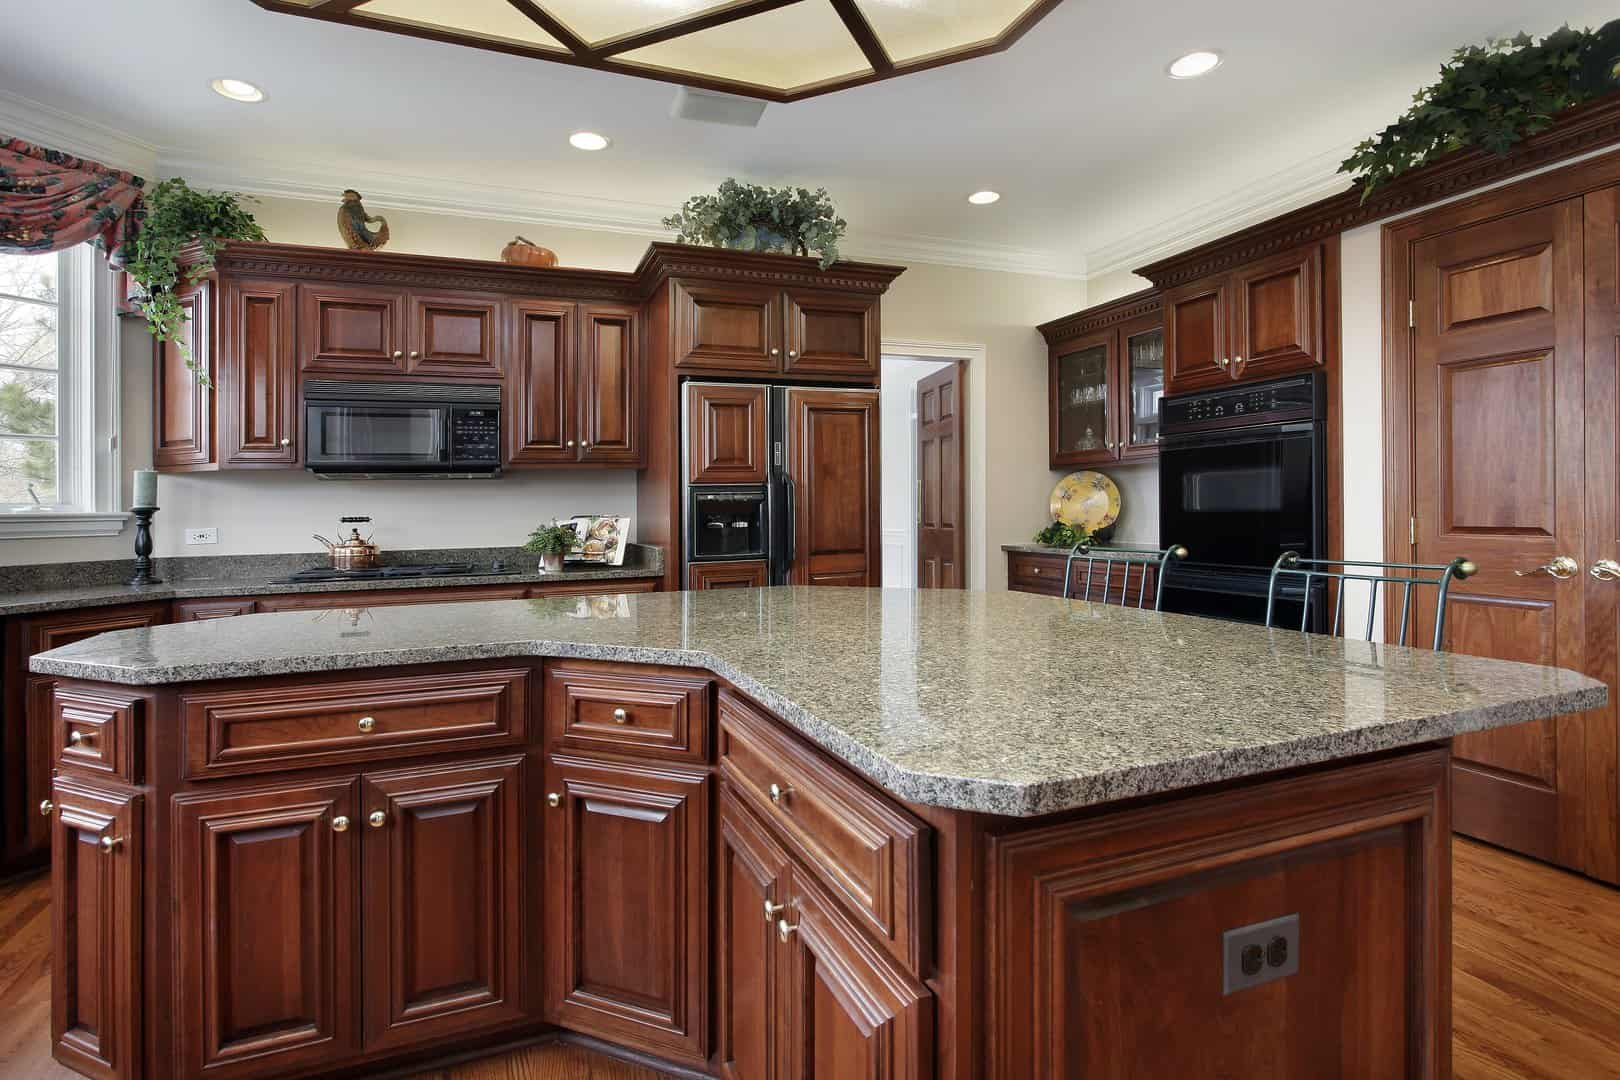 countertop refinishing in big kitchen by America Refinishing Pros